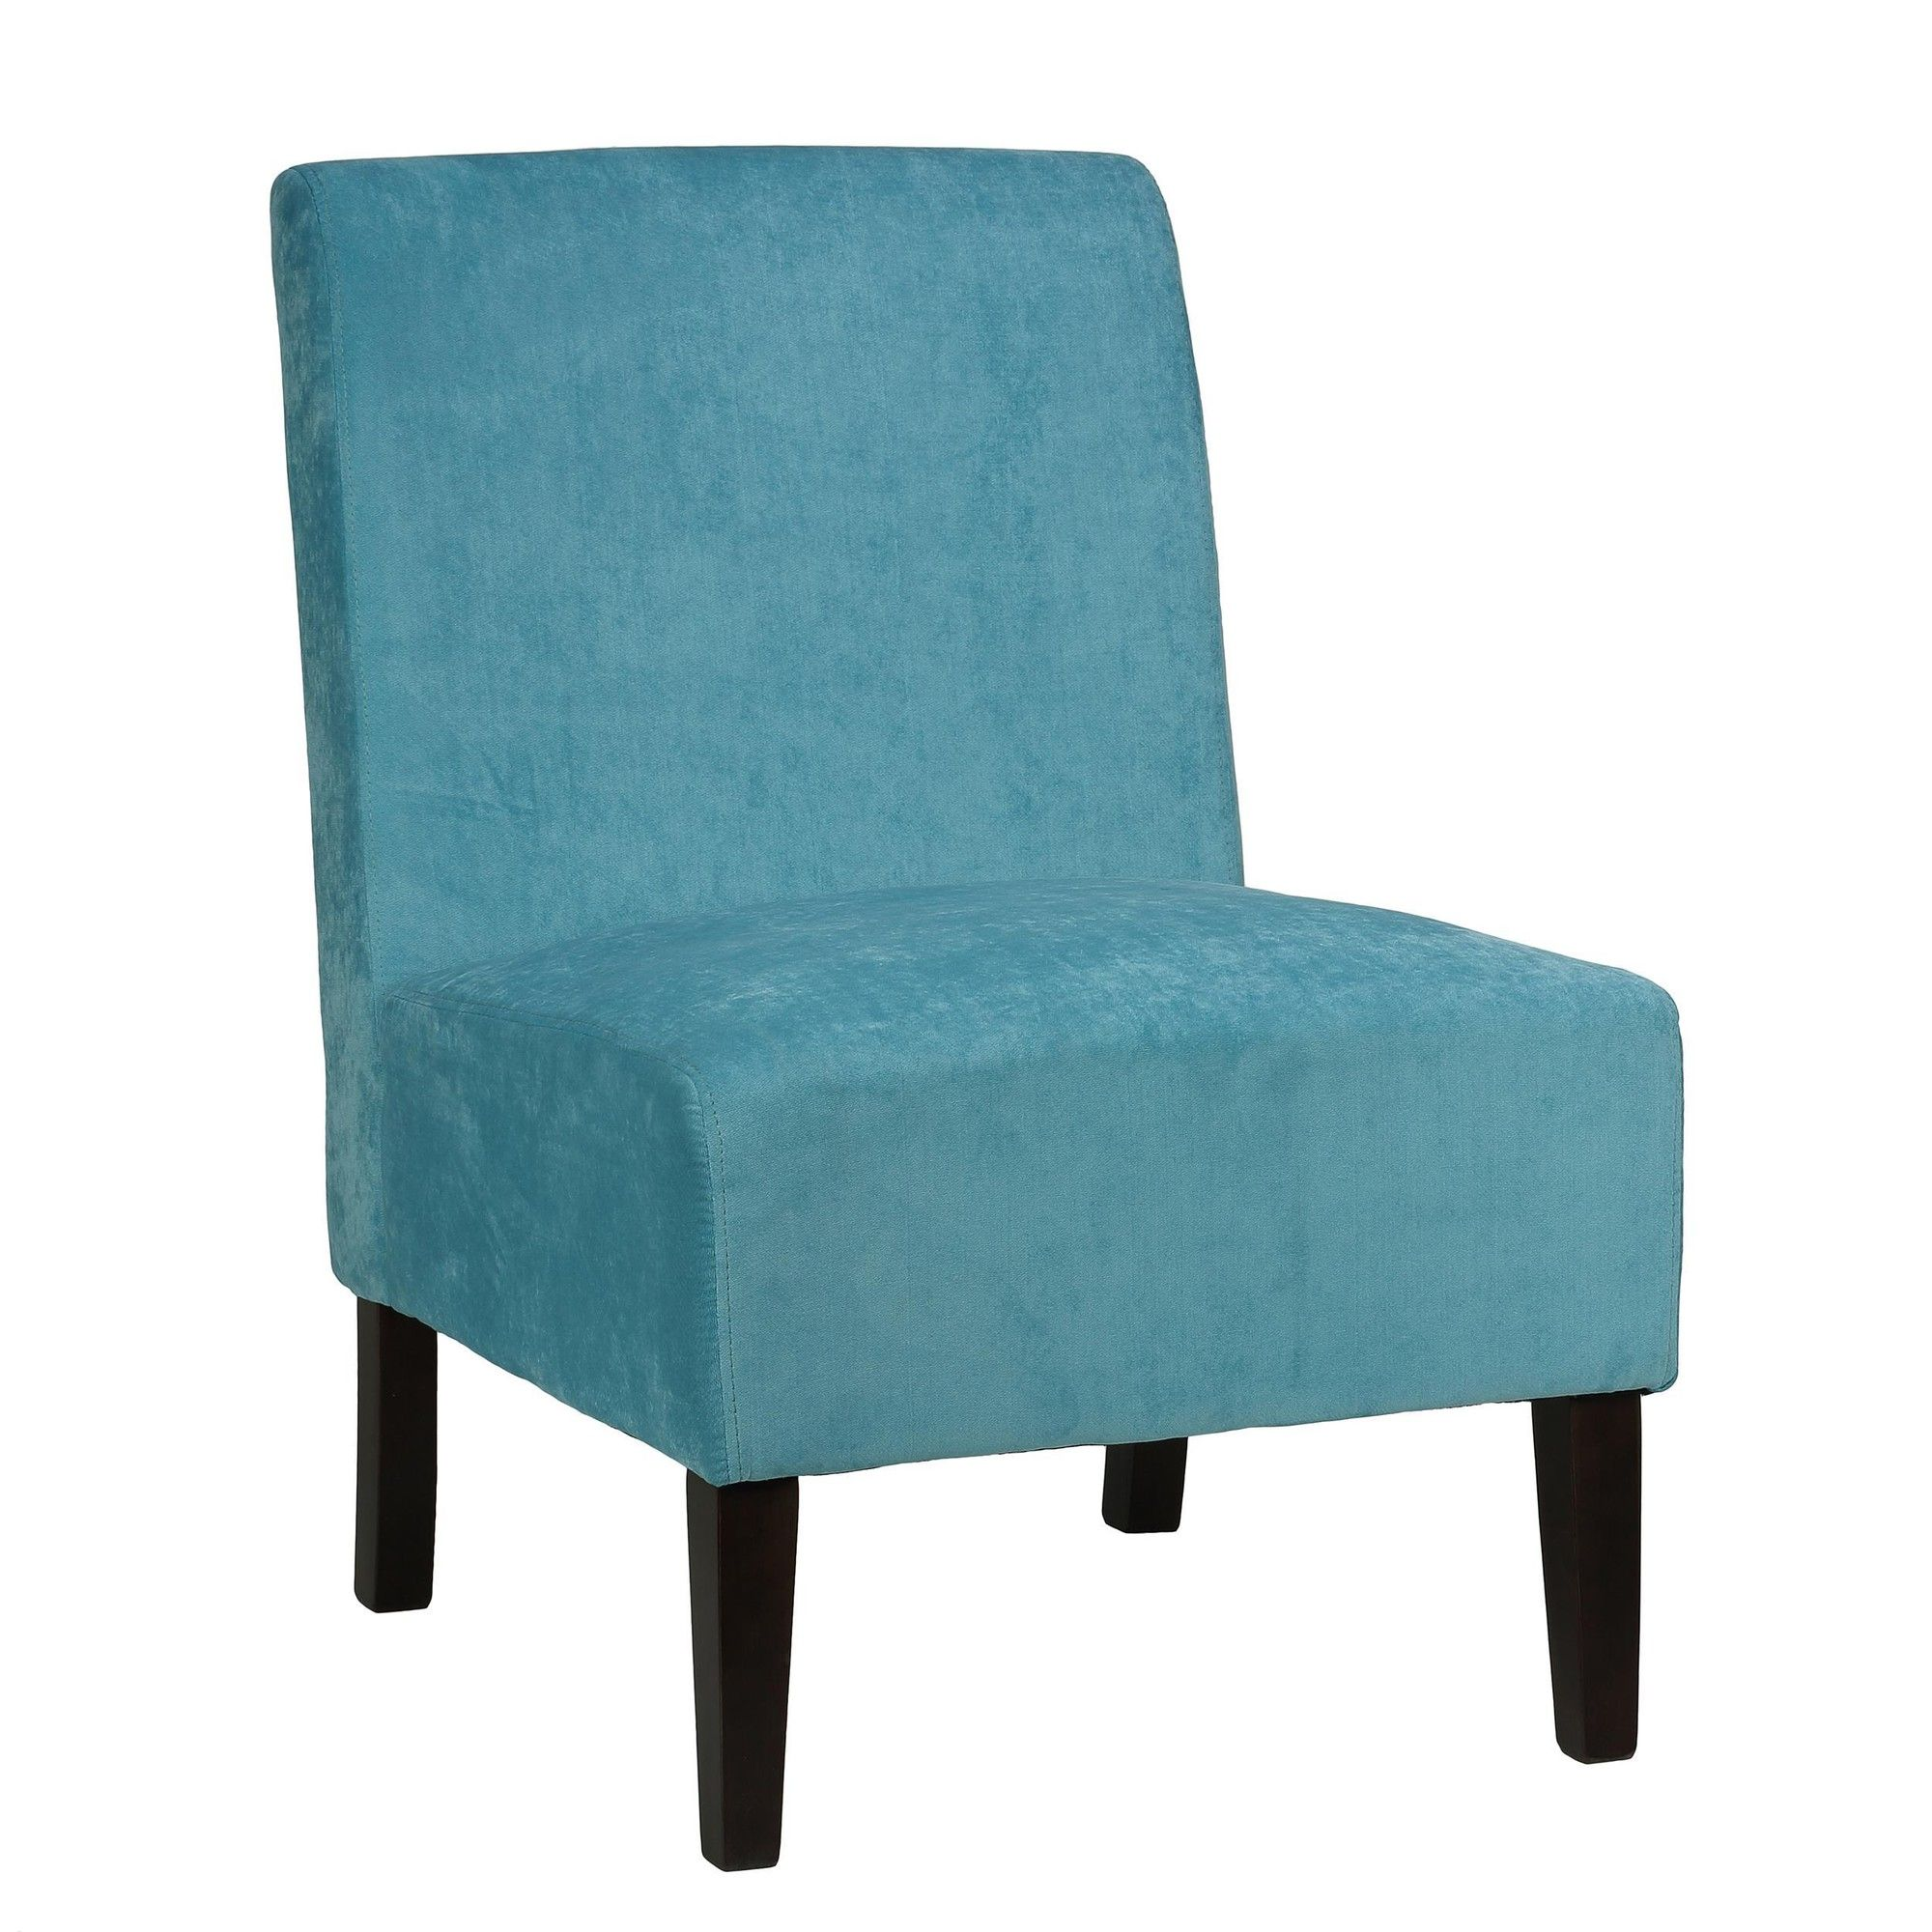 Cortesi home chicco accent side chair reviews wayfair